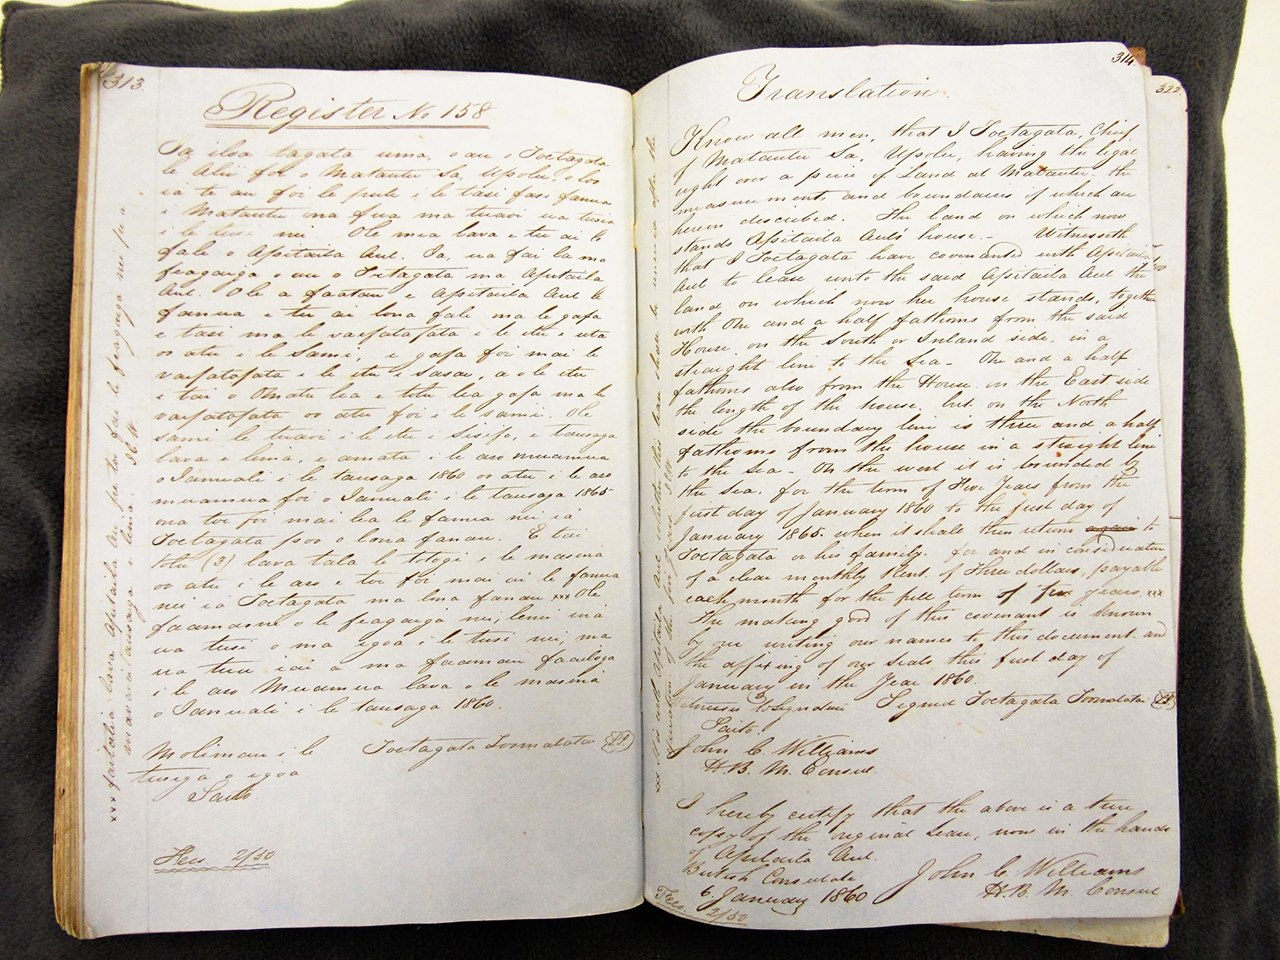 Photograph of a large book of handwritten script